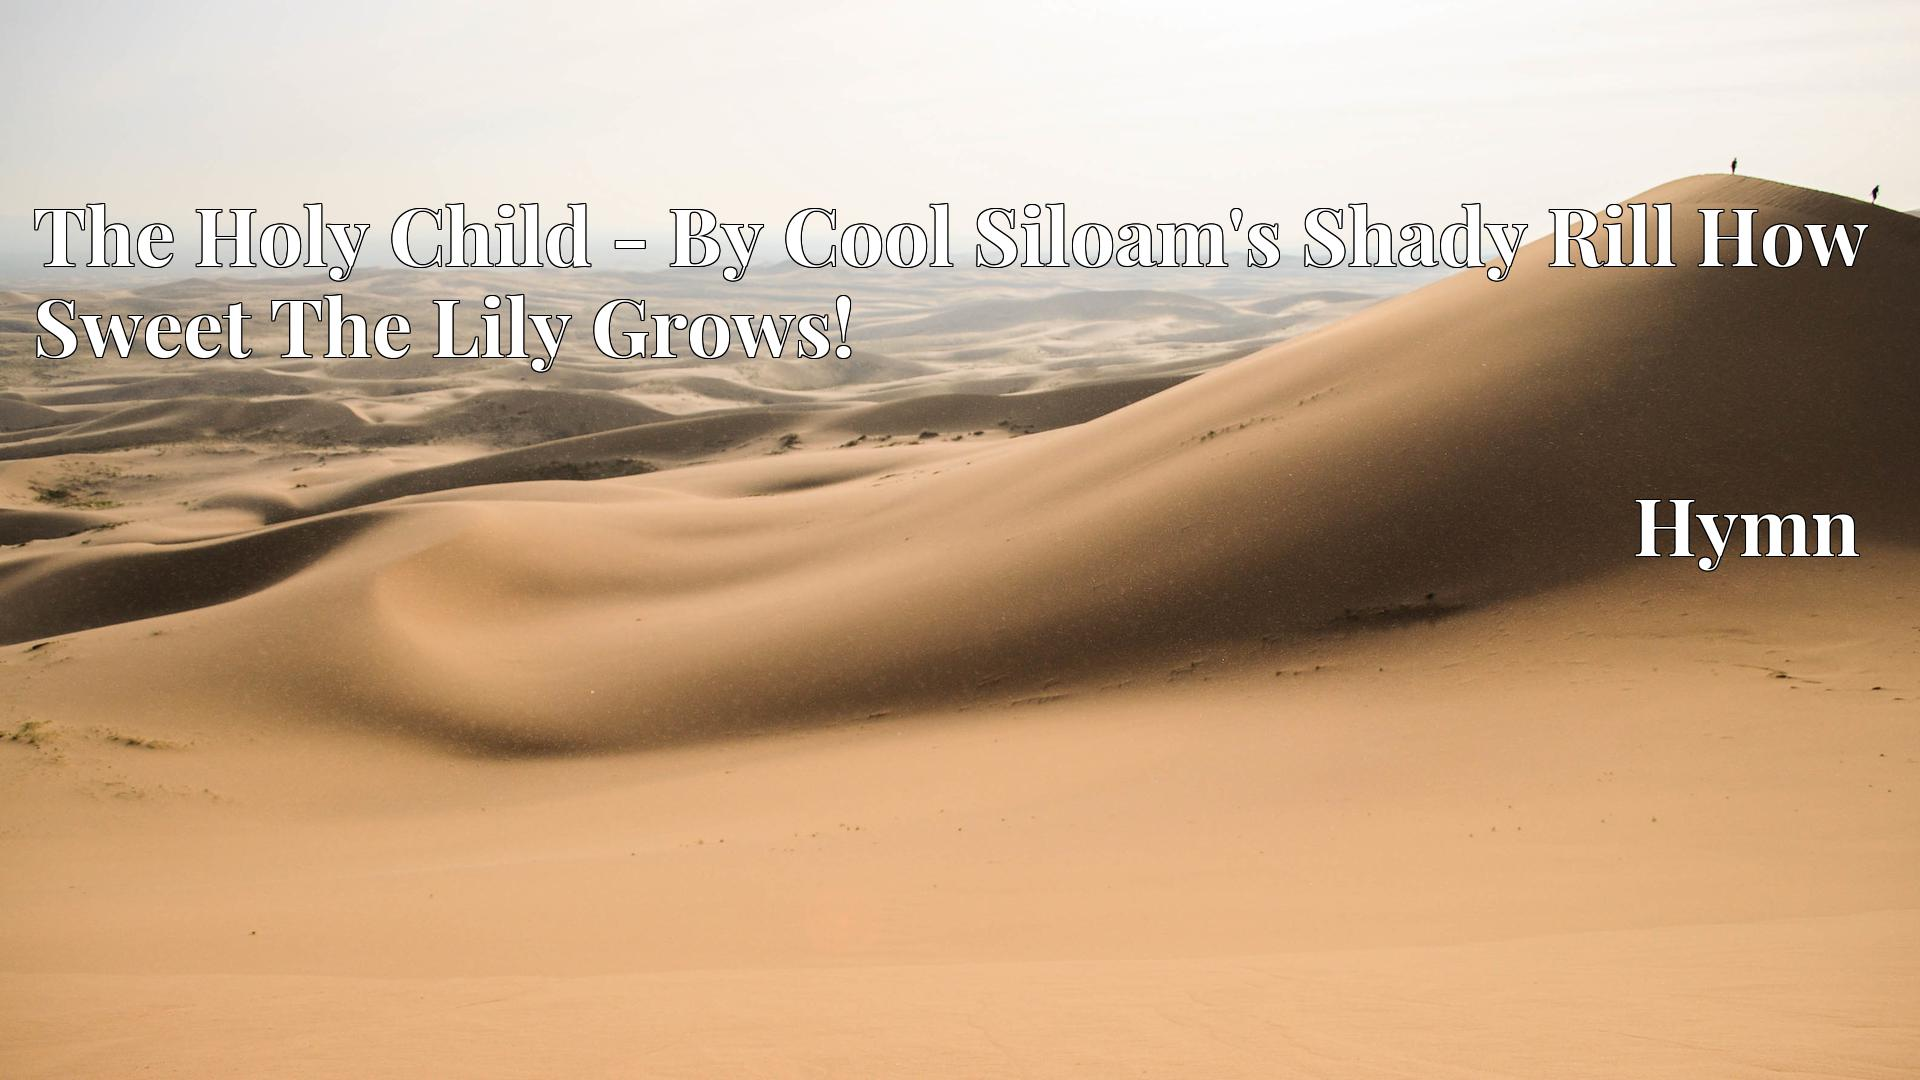 The Holy Child - By Cool Siloam's Shady Rill How Sweet The Lily Grows! - Hymn